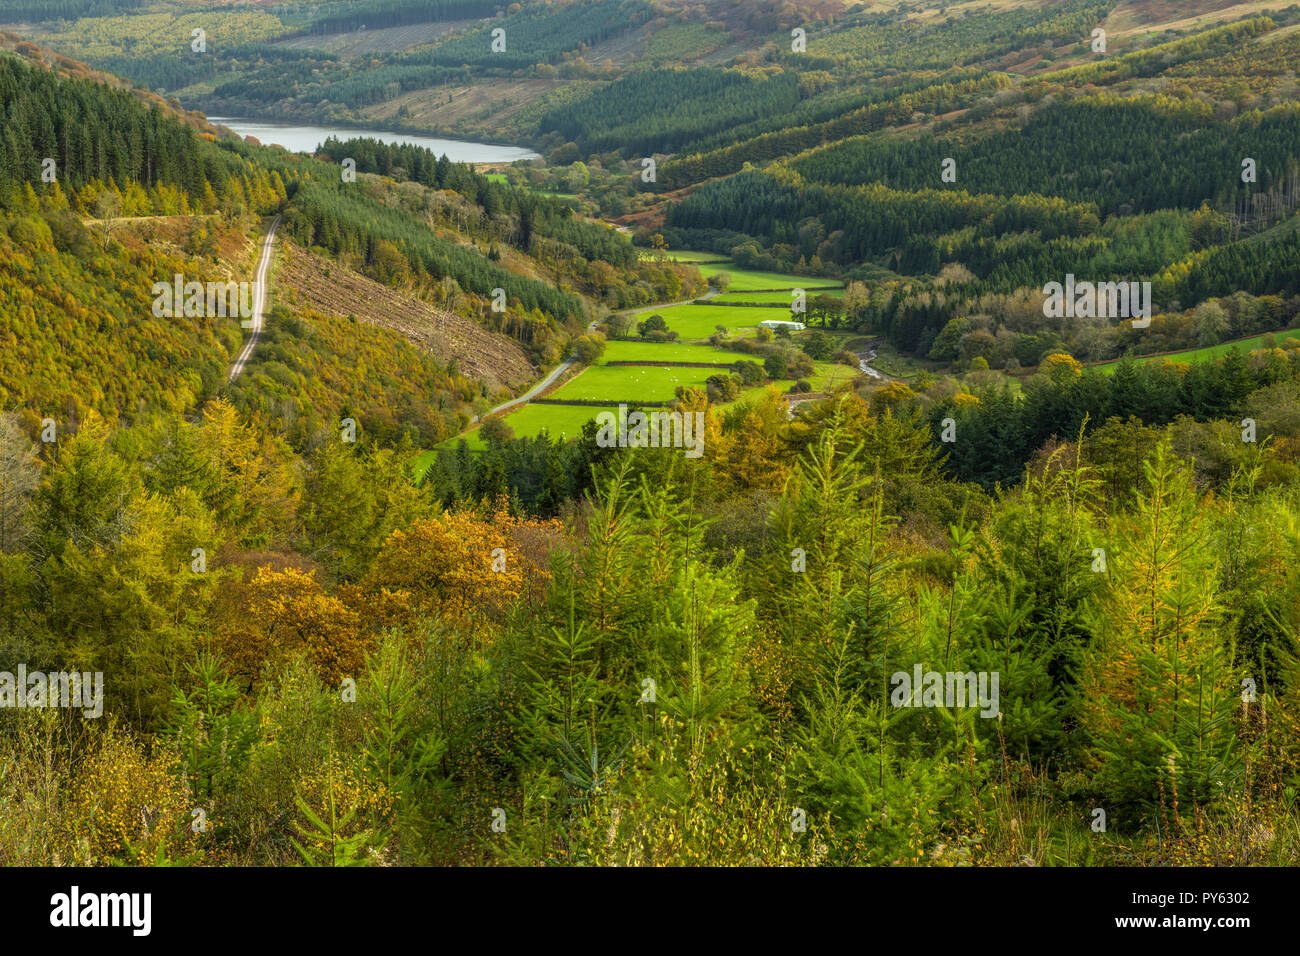 Looking down the Talybont Valley as far as the Talybont Reservoir, Brecon Beacons National Park - Stock Image